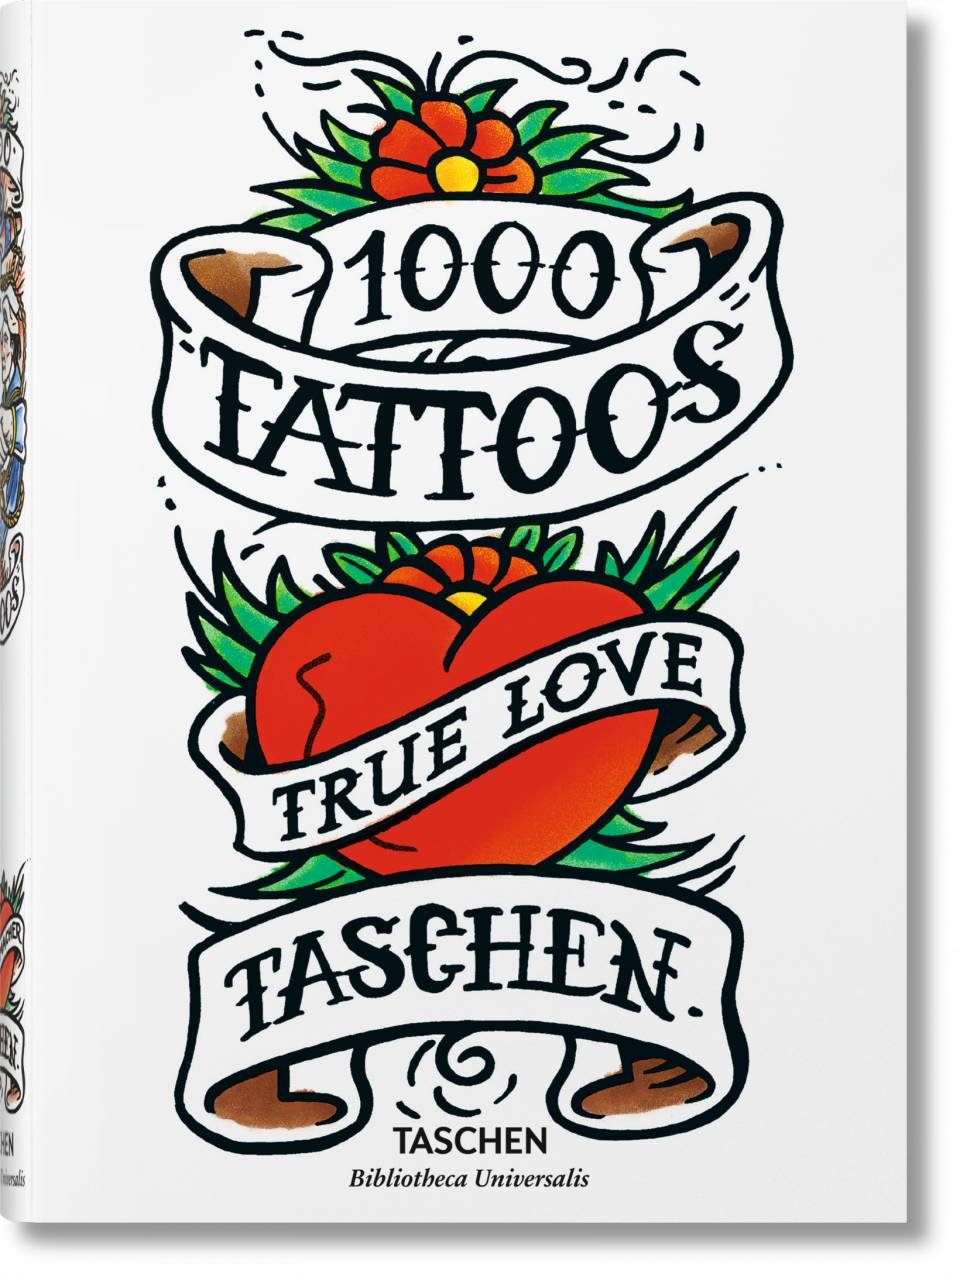 1000 Tattoos - image 1